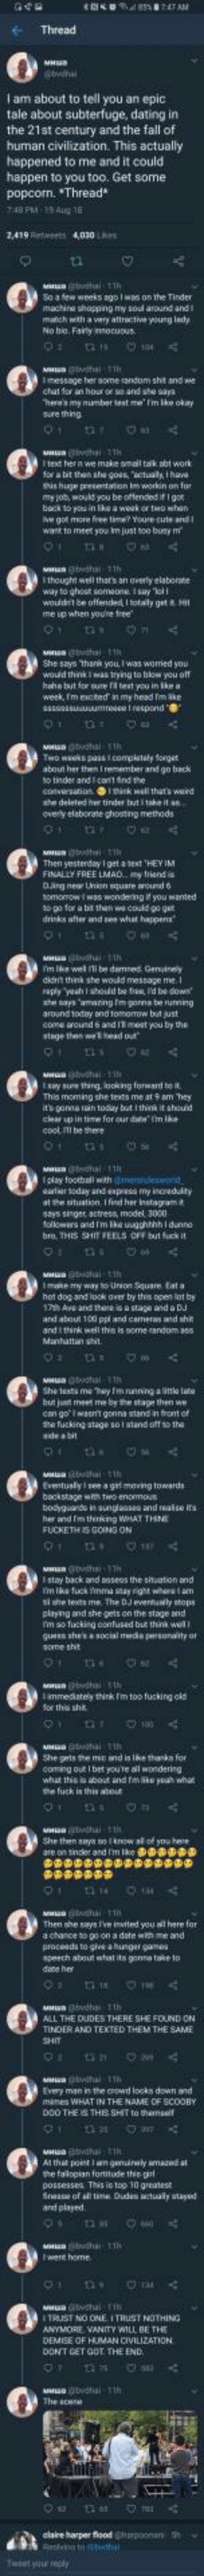 """We in 2018, she in 2058 by sooshi MORE MEMES: Thread  I am about to tell you an epic  tale about subterfuge, dating in  the 21st century and the fall of  human civilization. This actually  happened to me and it could  happen to you too. Get some  popcorn. Thread*  48 PM 39 Aug 18  2,419 Retweets 4,030 Ls  So a few weeks egolwas on the Tinder  machine ahopping my soul around and t  vary attractwe young laxty  No bio. Fairly innocuous  l text her n we make amall tak abt work  or a bit than she gois,uaty, thawa  hic huge precentation im werkin on for  my job, would you be ottended if I got  back to you  ve gol more free time? youre cute and t  want to meer you Im just oo busy m  thought wel that's an owerty elaborate  way to ghest somsone i say TolI  woudrt be offended Isotaty get t  me up when you're iree  thank you  t was wormed you  late buri for sure ra test you in Sk"""" ฮ  n my head Tm  Two waaks pais 1 compktdy sorget  about her then I remember and go back  o tinder andic  ontt ind  i that's ward  she deleted her tinder buti take it s  overly elaborate ghoating methods  Then yesterday Iget a vext THEY IM  omomow t was wondering if you wanted  wa coukd go get  drinks ater and see what happens  m like wel iibe daned Genuinely  didnt think  she would message me  around todoy and tomonow but just  conte around 6 and 11 meet you try the  stage thes weead ot  say sure thing lpoking formand bo it  This moming she texts me at 9 am hey  it's gonna rain today but i thin it shoud  clear up in time for our de I'm ike  coot ill be there  Iplay football wth gerwond  aliar soday and aspresa m iscredulty  at the stuation Ifind her Instagrmt  says singer actress, model, 3000  ollewersand Im Ehe uugghhhh I dunno  bro. THIS SHIT FEELS OFf but fuck it  0  I make my way to Unign Square  Eat a  hot dog and look Ơwer by this open tot by  and about 100 ppl and camerus and sh  Manhattn shit  e random a  She leats me eym neinng a lttle tn  but jut meet me by te stage then we  can golwaen't """